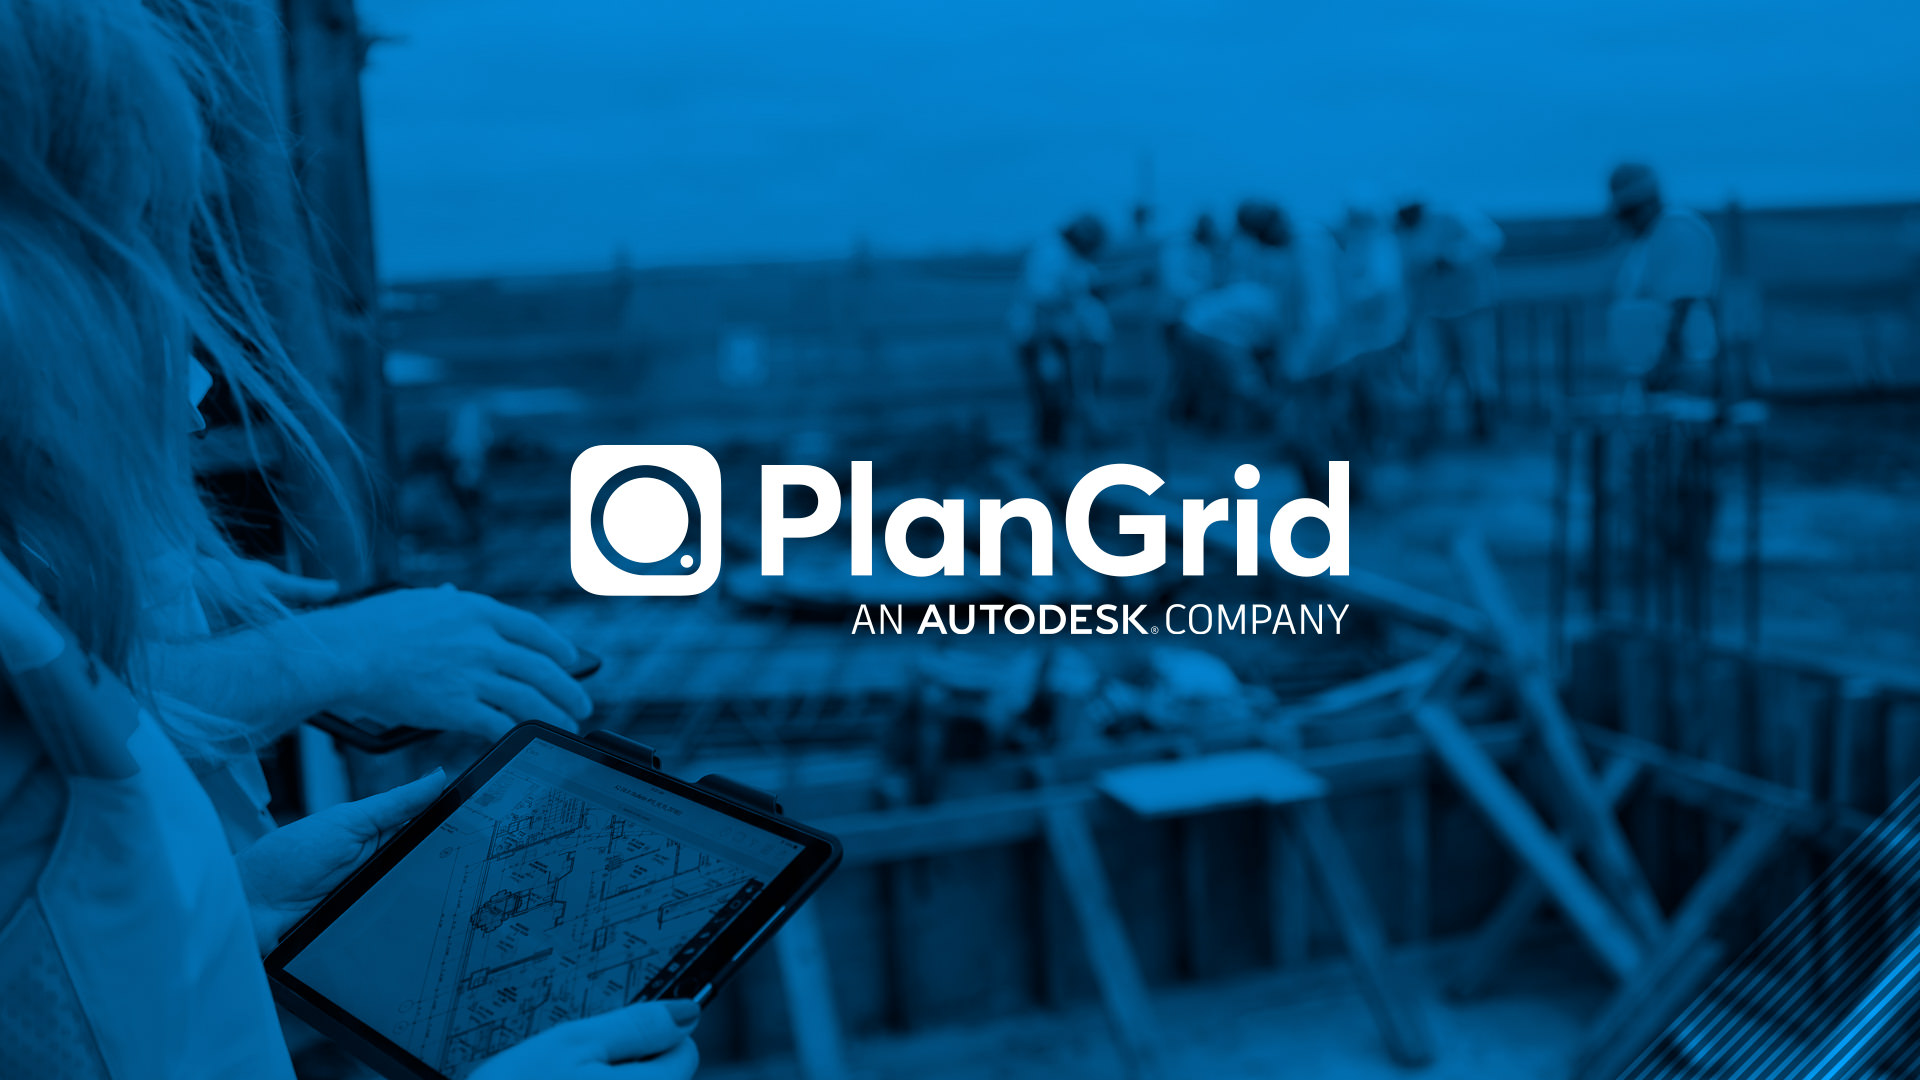 PlanGrid - Construction Software & Blueprint App